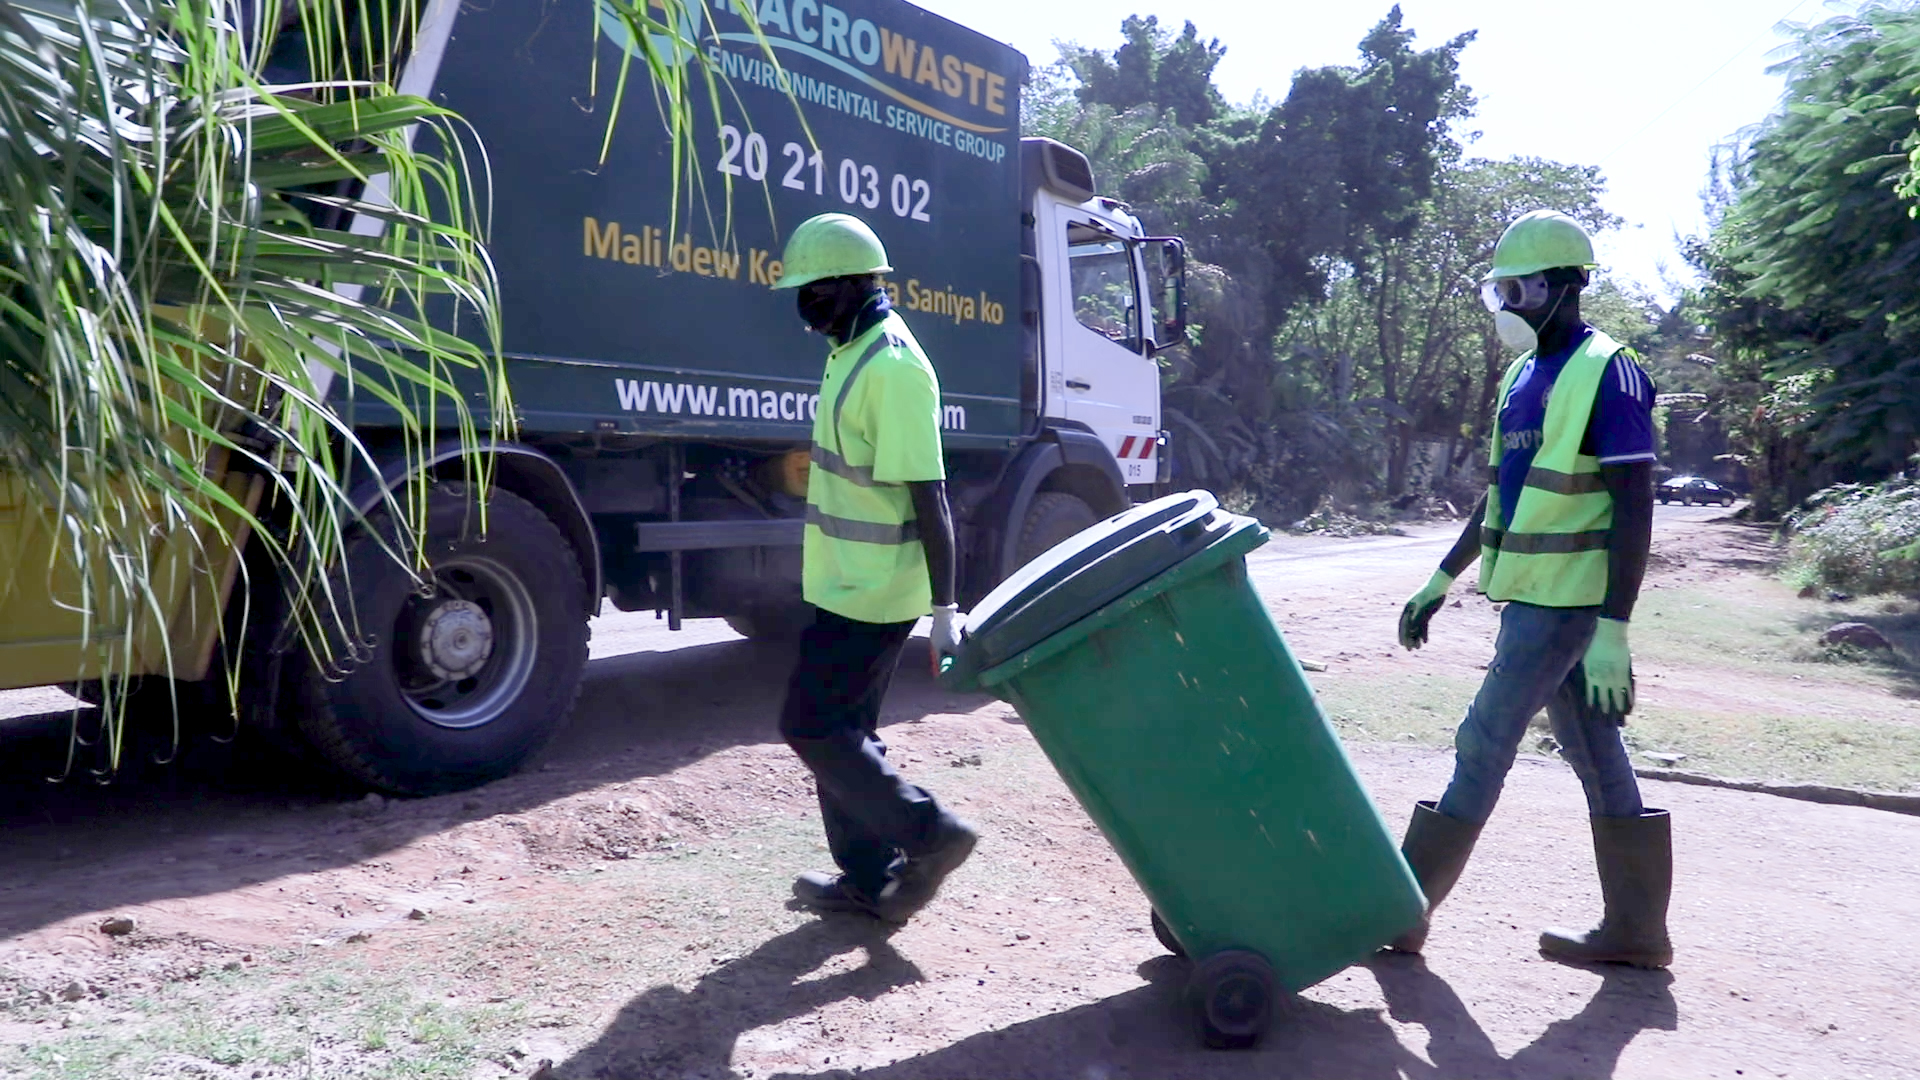 Investing in waste management